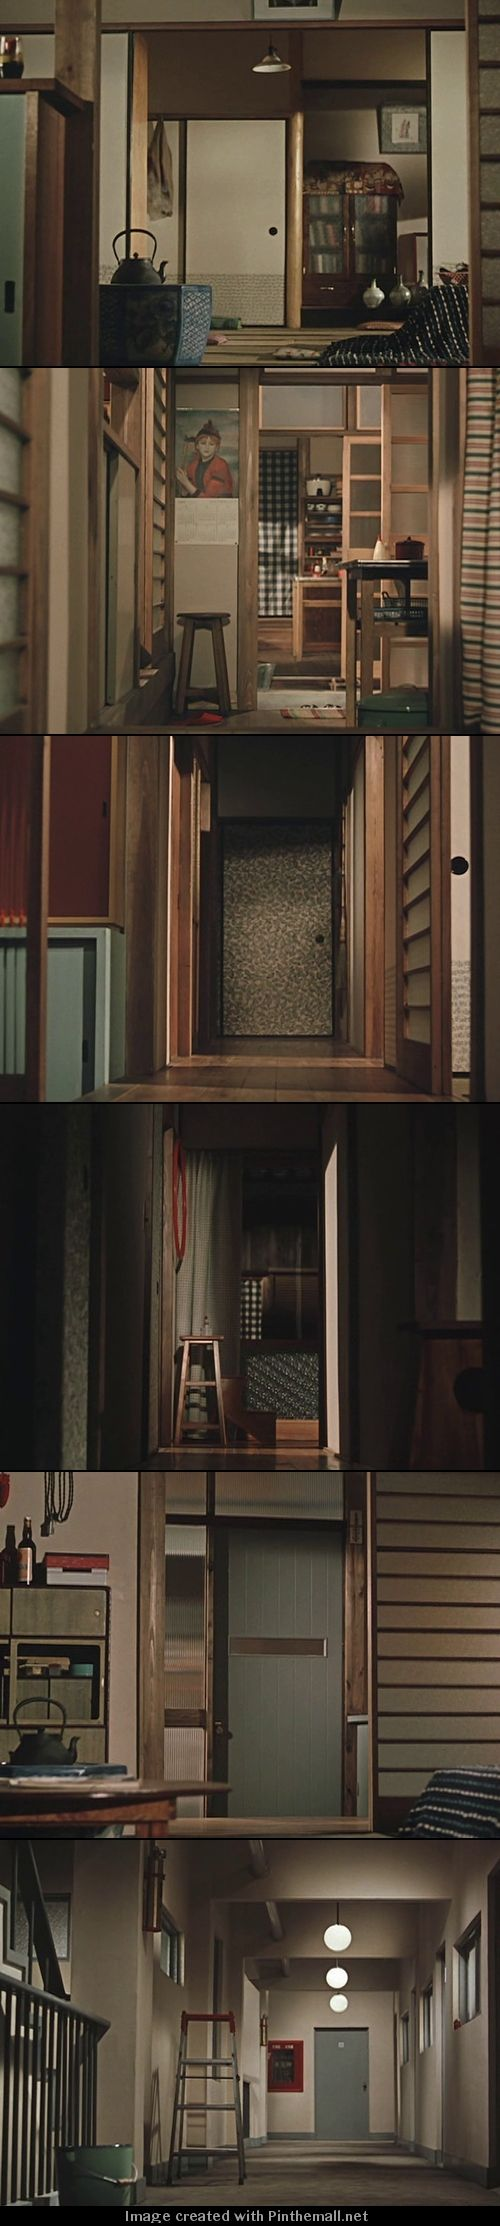 Yasujiro Ozu's interiors and low camera angles as seen in Good Morning (1959)